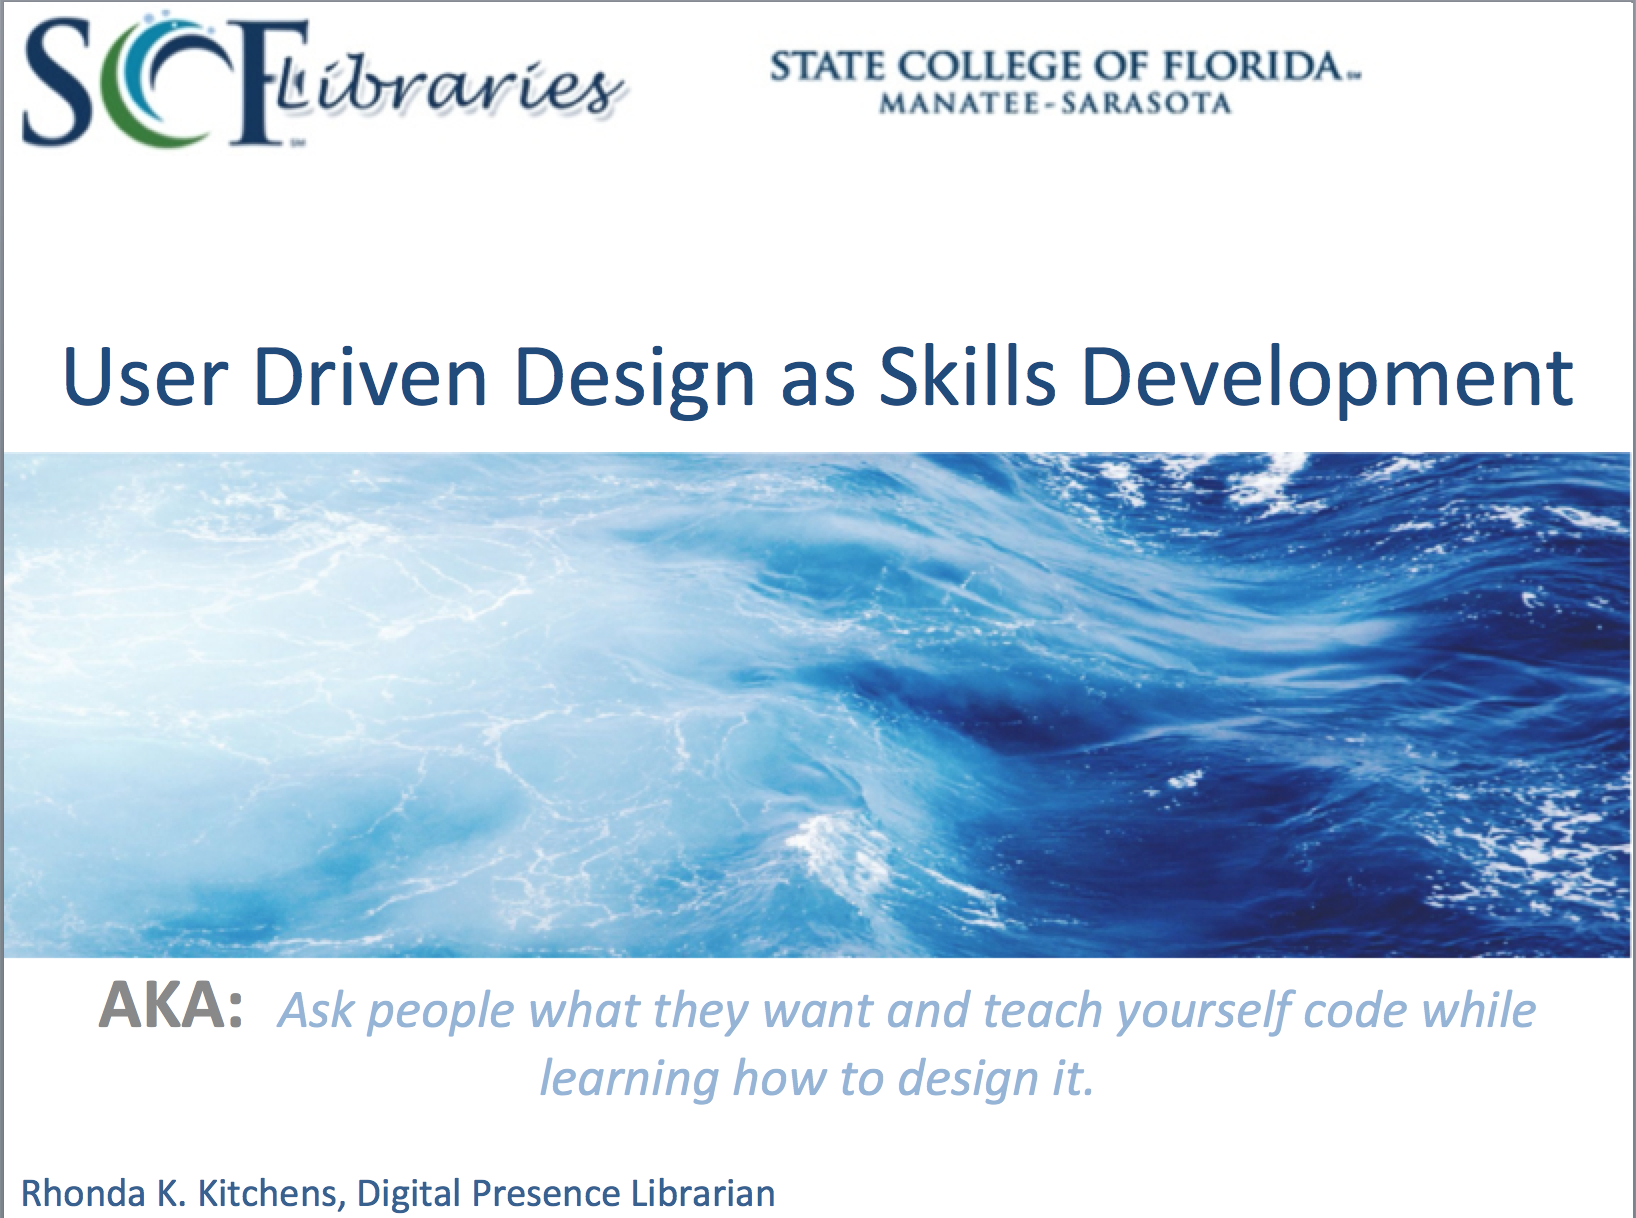 User driver design as skills development